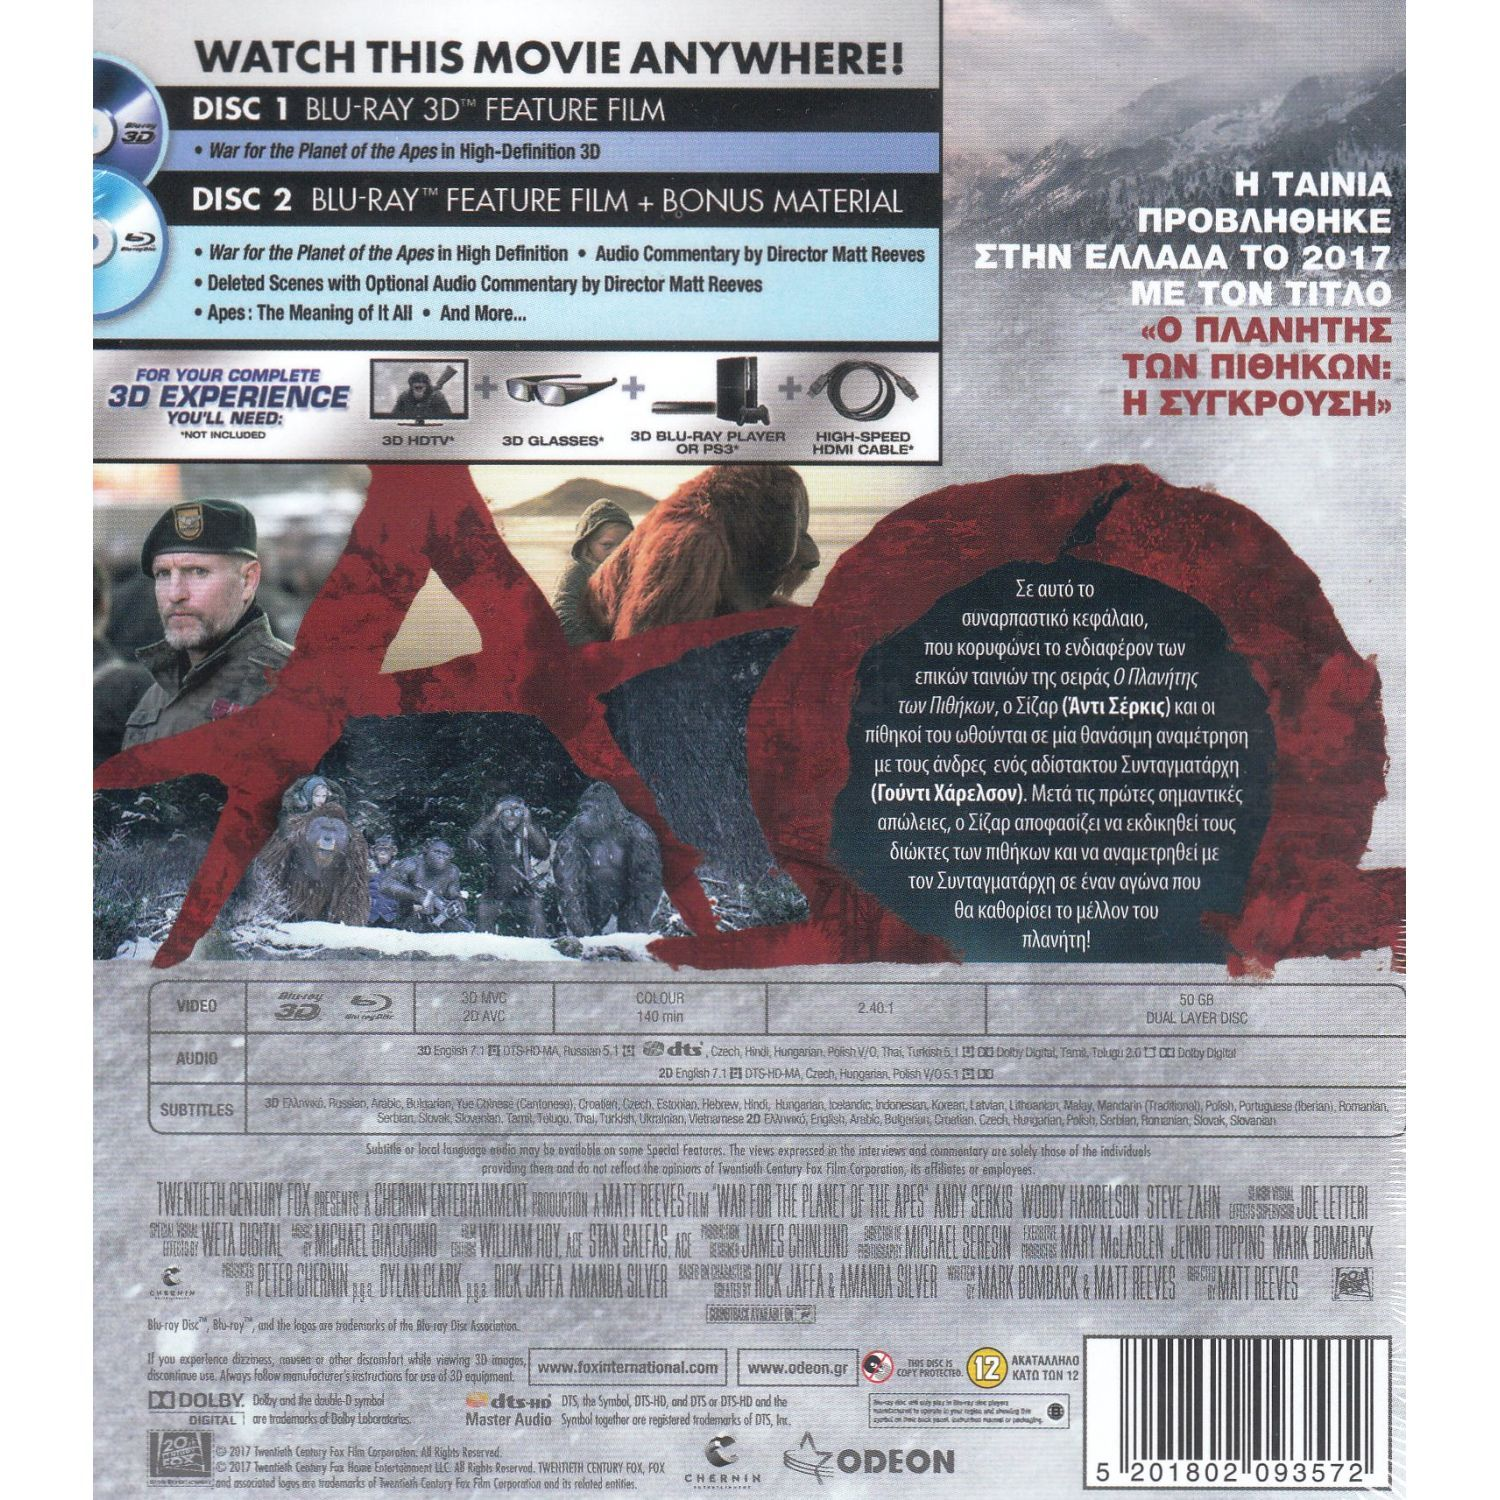 war for the planet of the apes 3d 2d blu ray 3d blu ray 2d blu. Black Bedroom Furniture Sets. Home Design Ideas